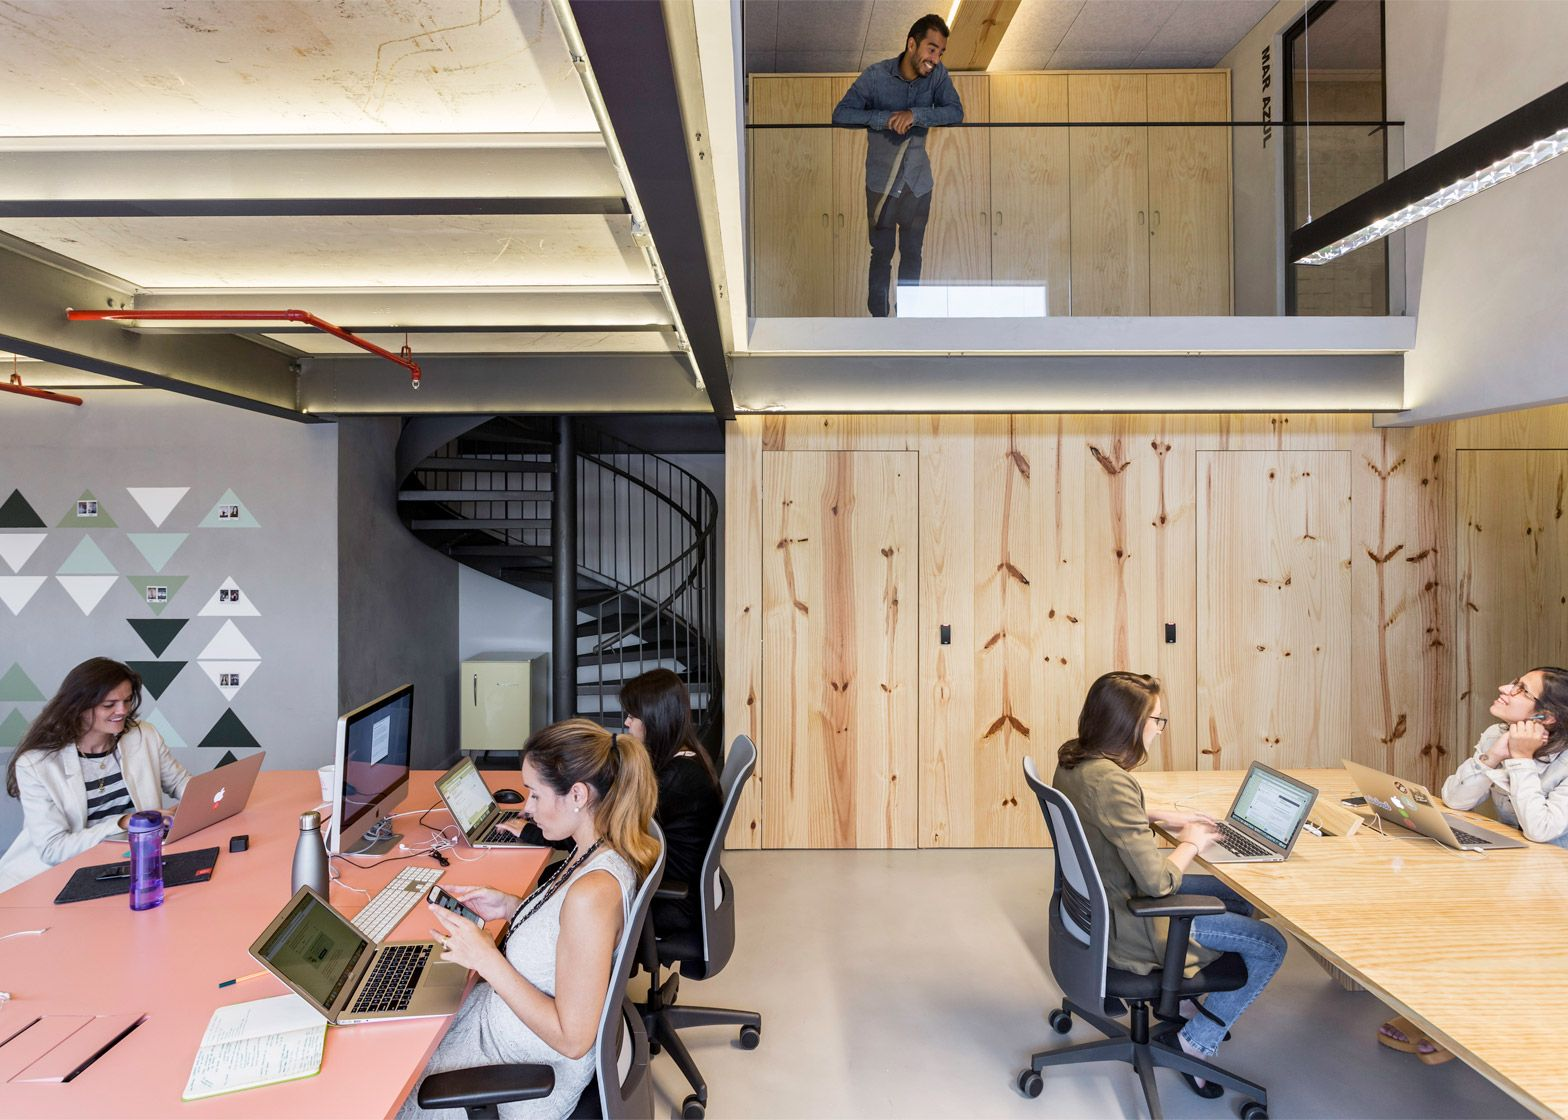 airbnb office london. Airbnb Designs Adaptable Office Spaces For London, Sao Paulo And Singapore Airbnb London E